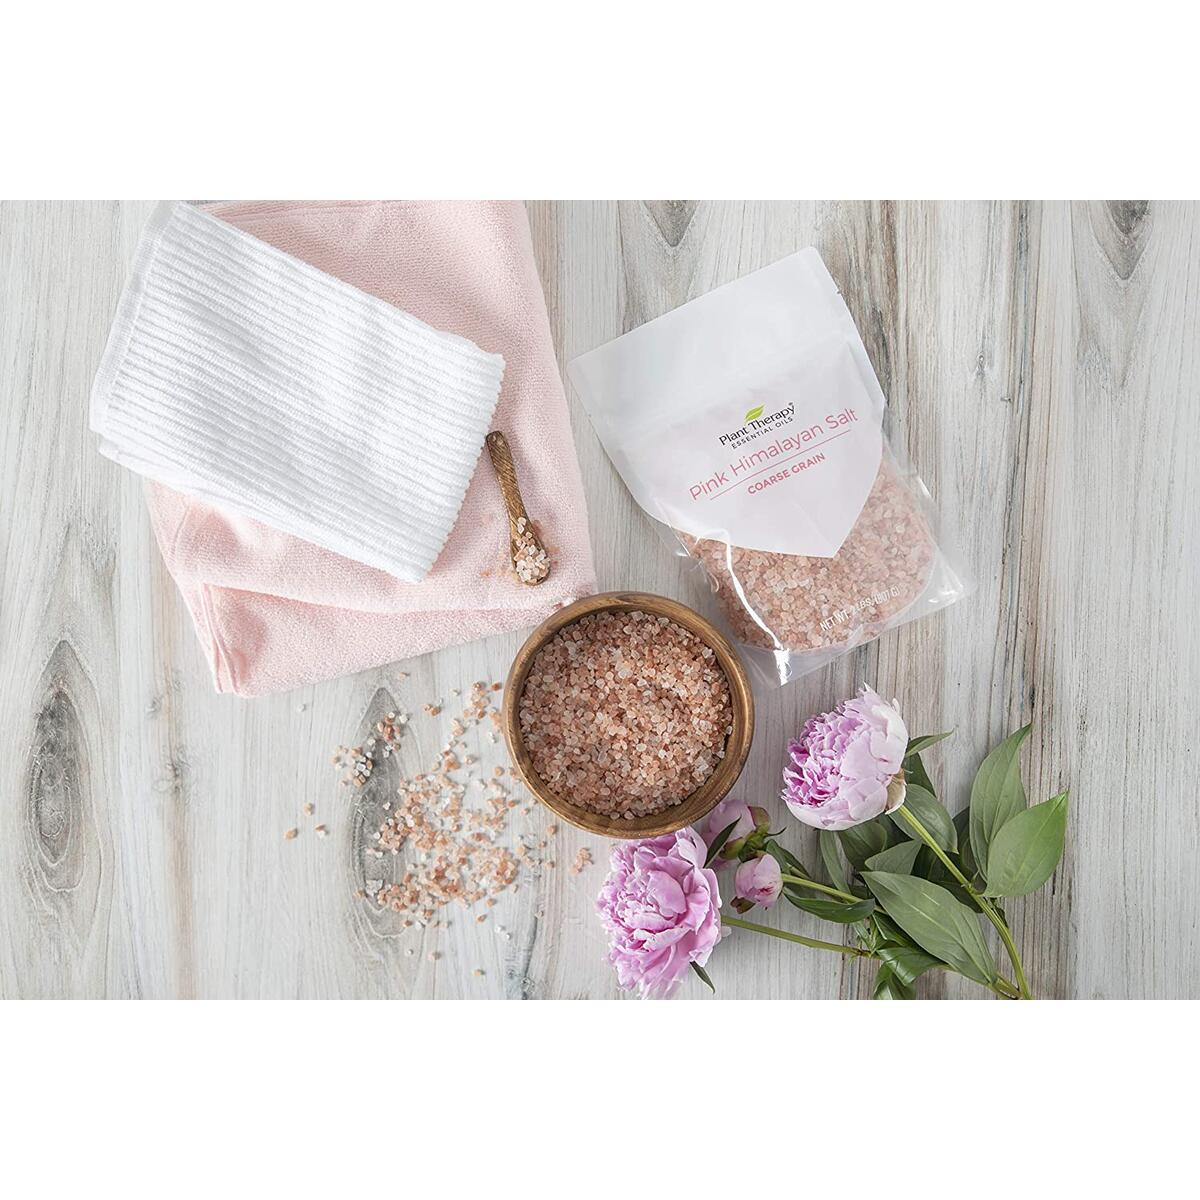 Plant Therapy Pink Himalayan Salt Extra Coarse 2 lb bag Rich in Nutrients and Minerals to Improve Your Health